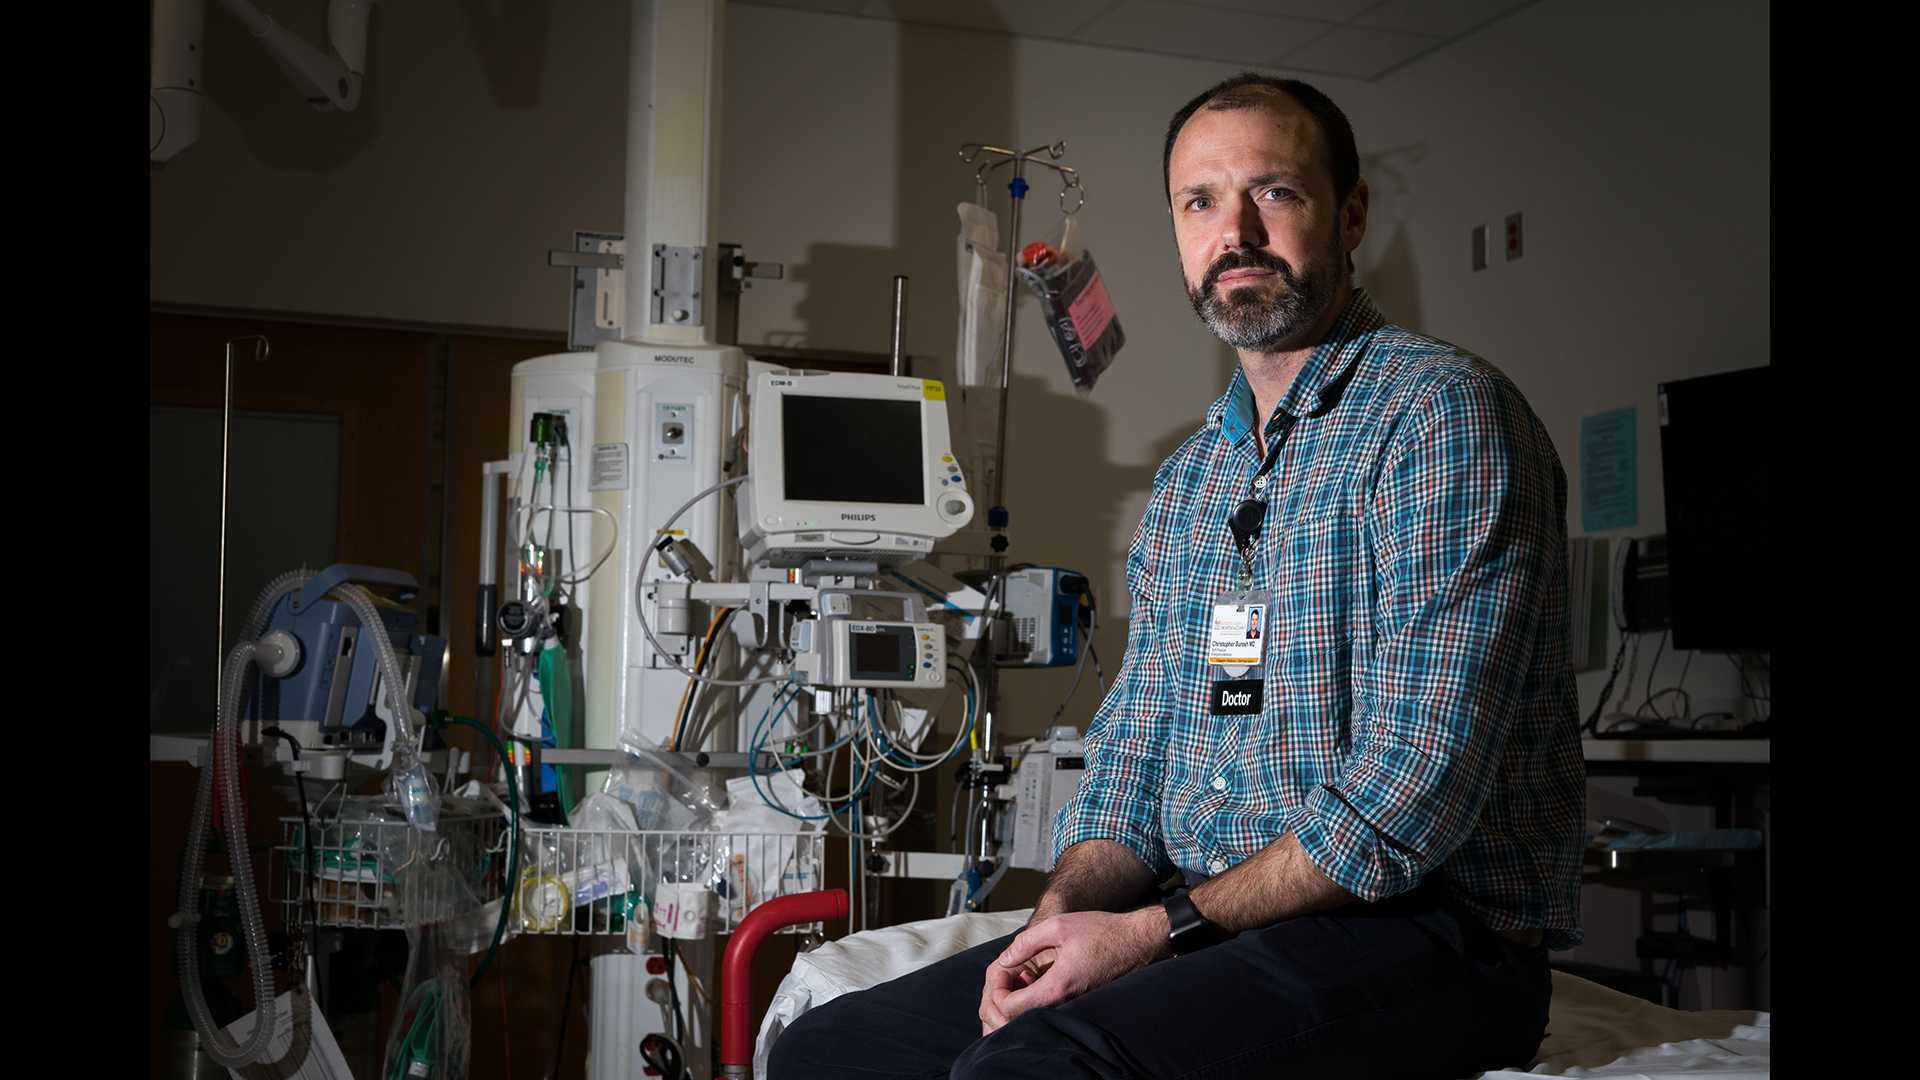 Iowa's Christopher Buresh, a clinical professor of emergency medicine, poses for a portrait in the emergency department of the University of Iowa Hospital on Tuesday, Feb. 6, 2018. (Matthew Finley/The Daily Iowan)